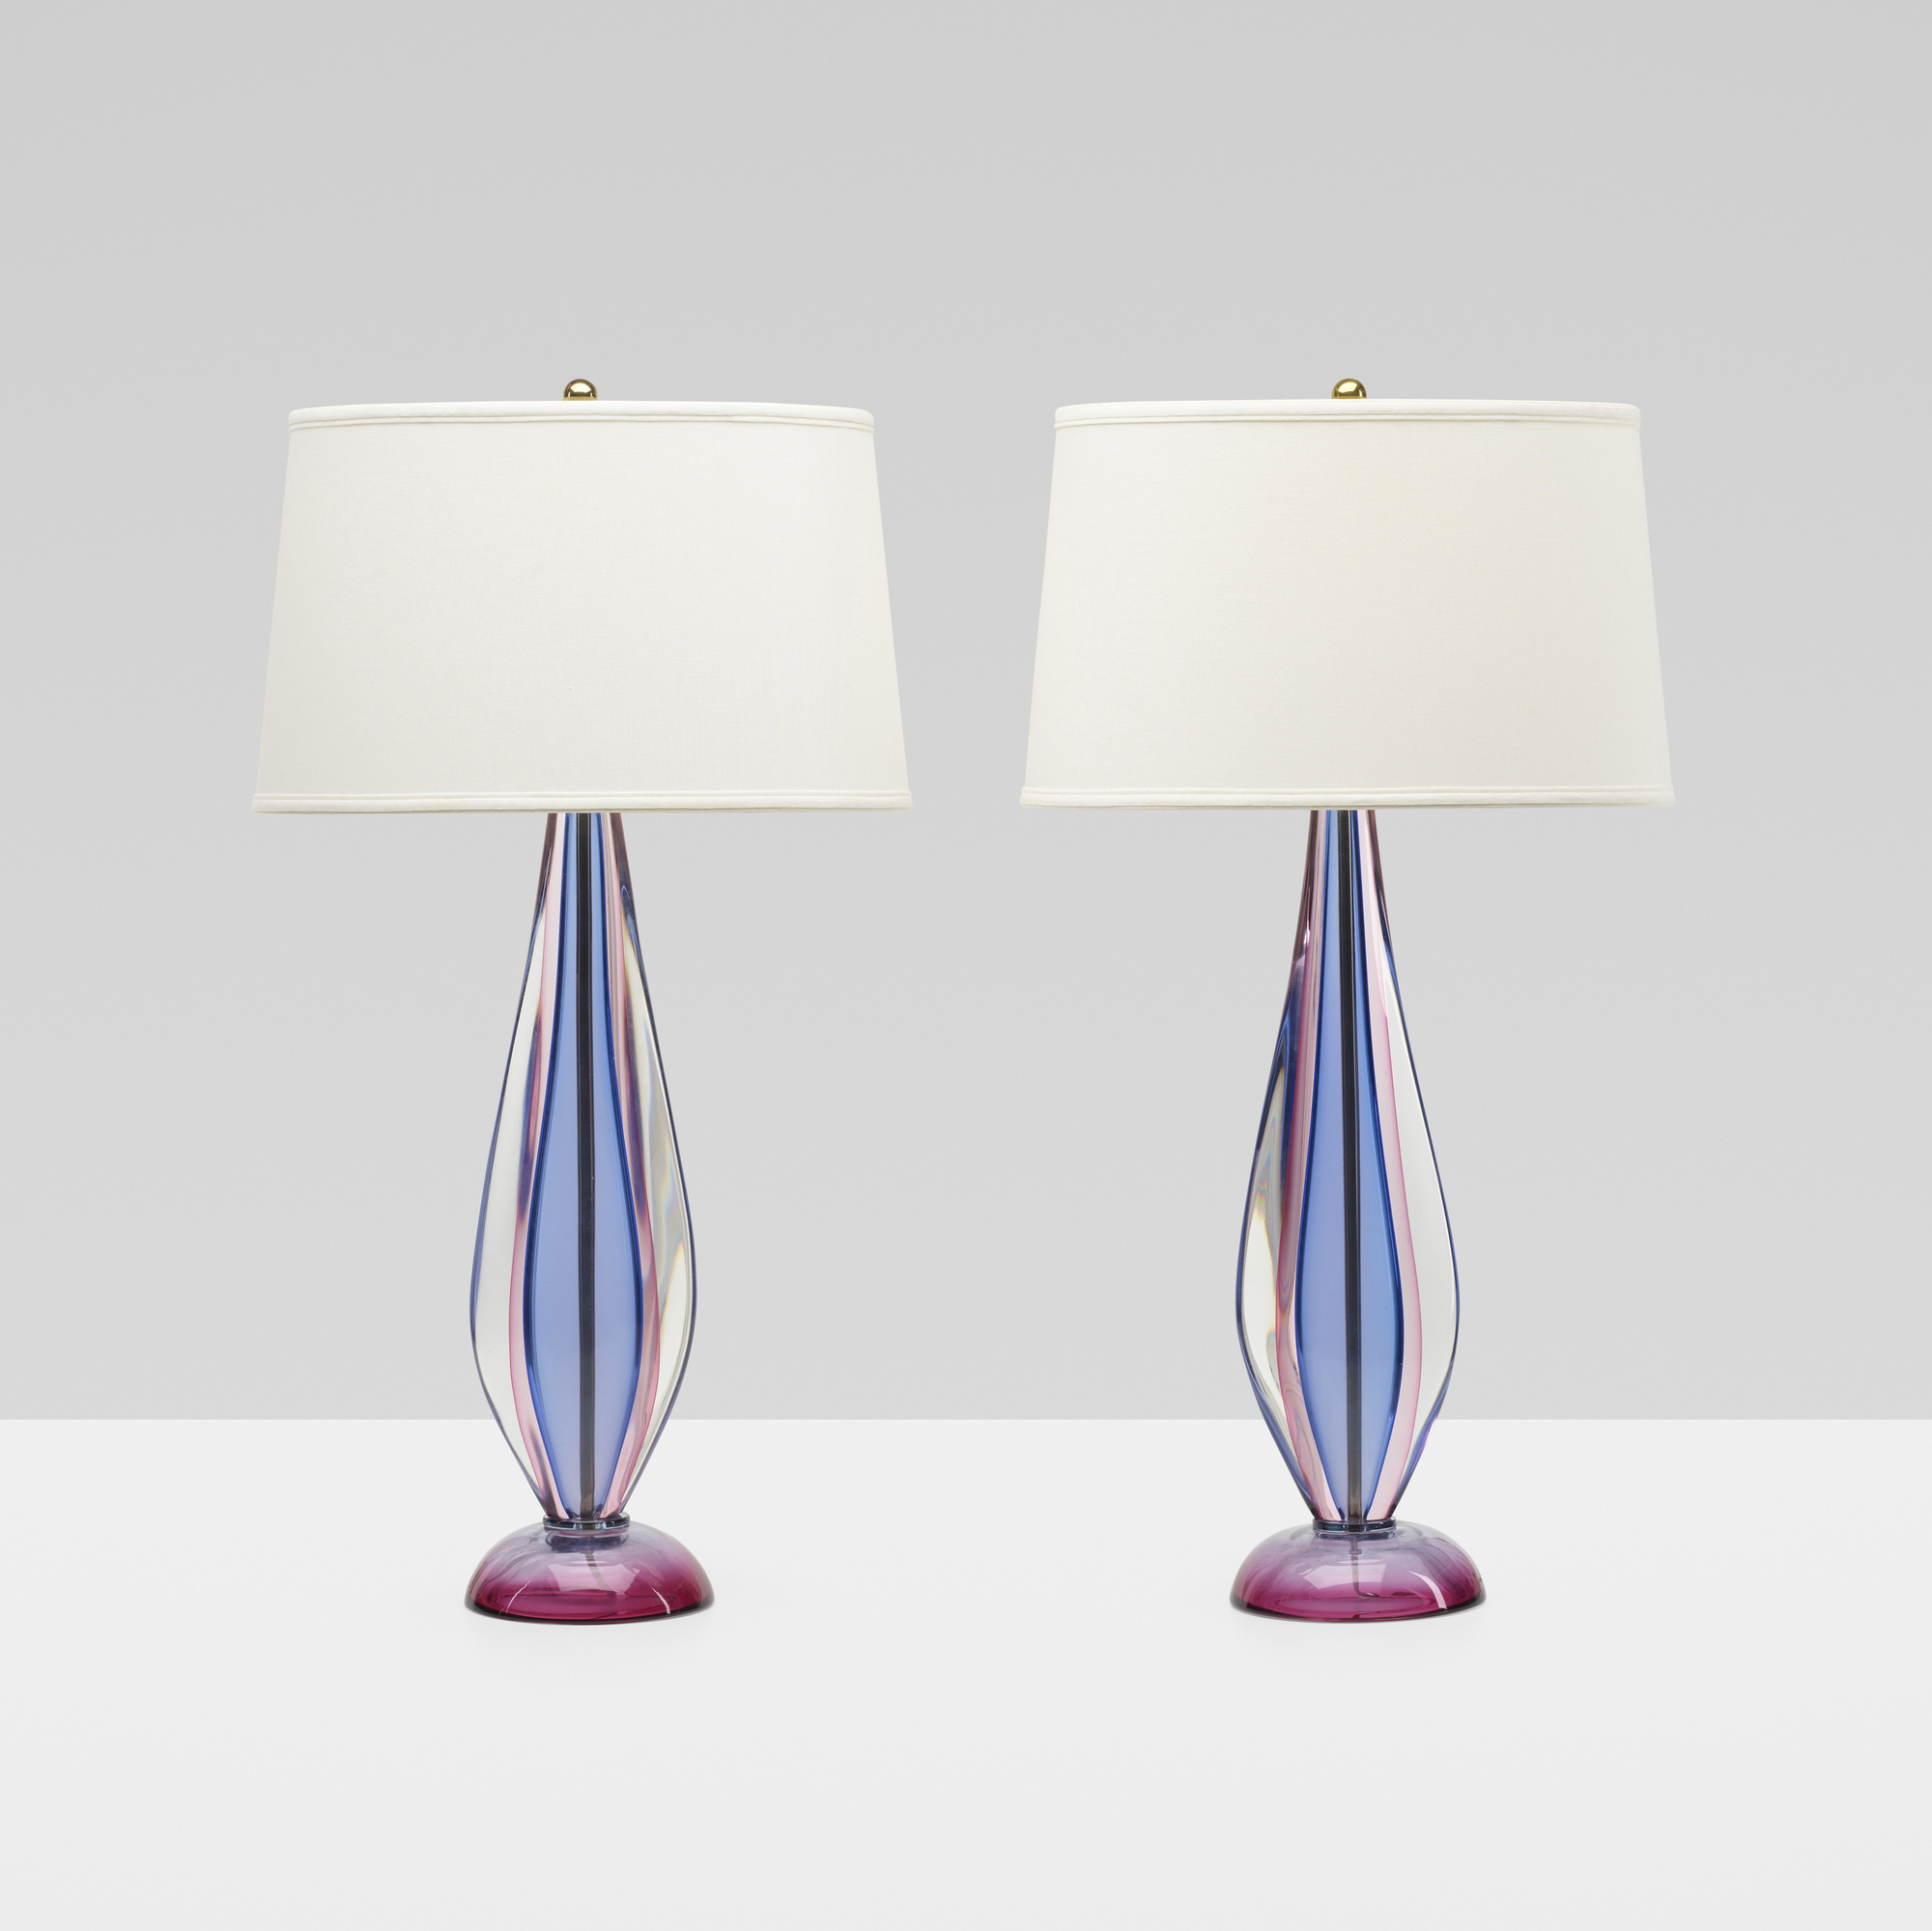 246: Archimede Seguso / table lamps, pair (2 of 3)